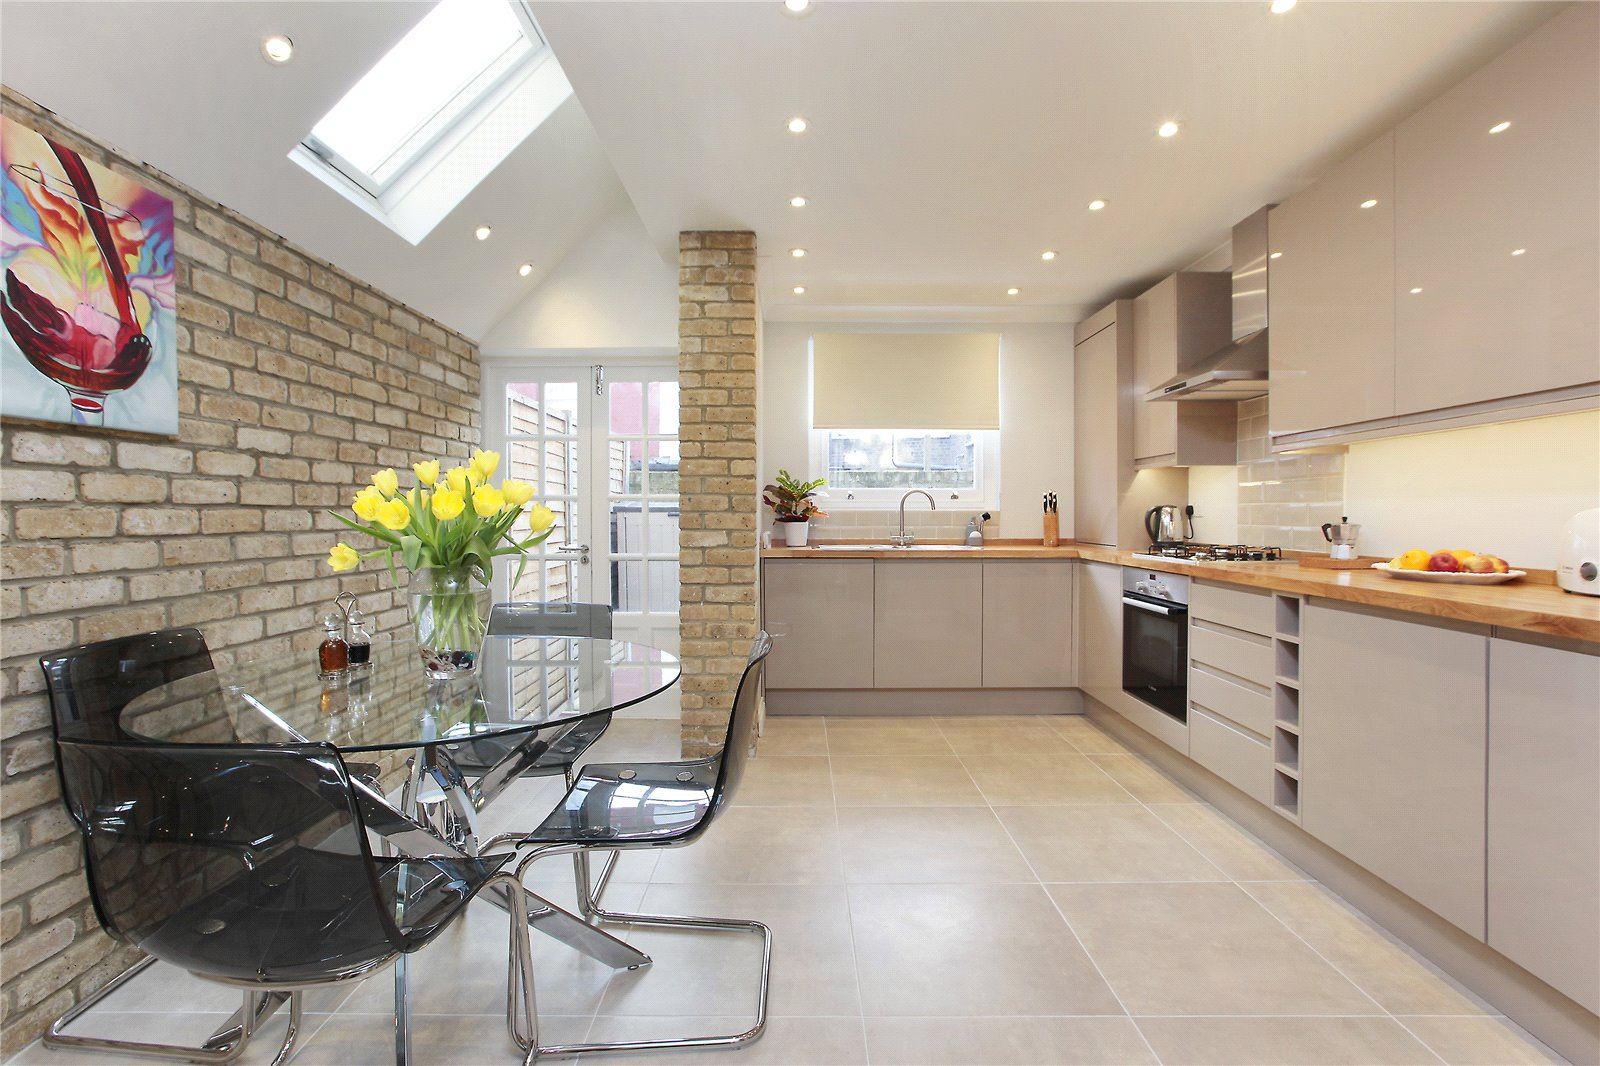 4 Bedrooms Terraced House for sale in Hereward Road, Tooting, London, SW17